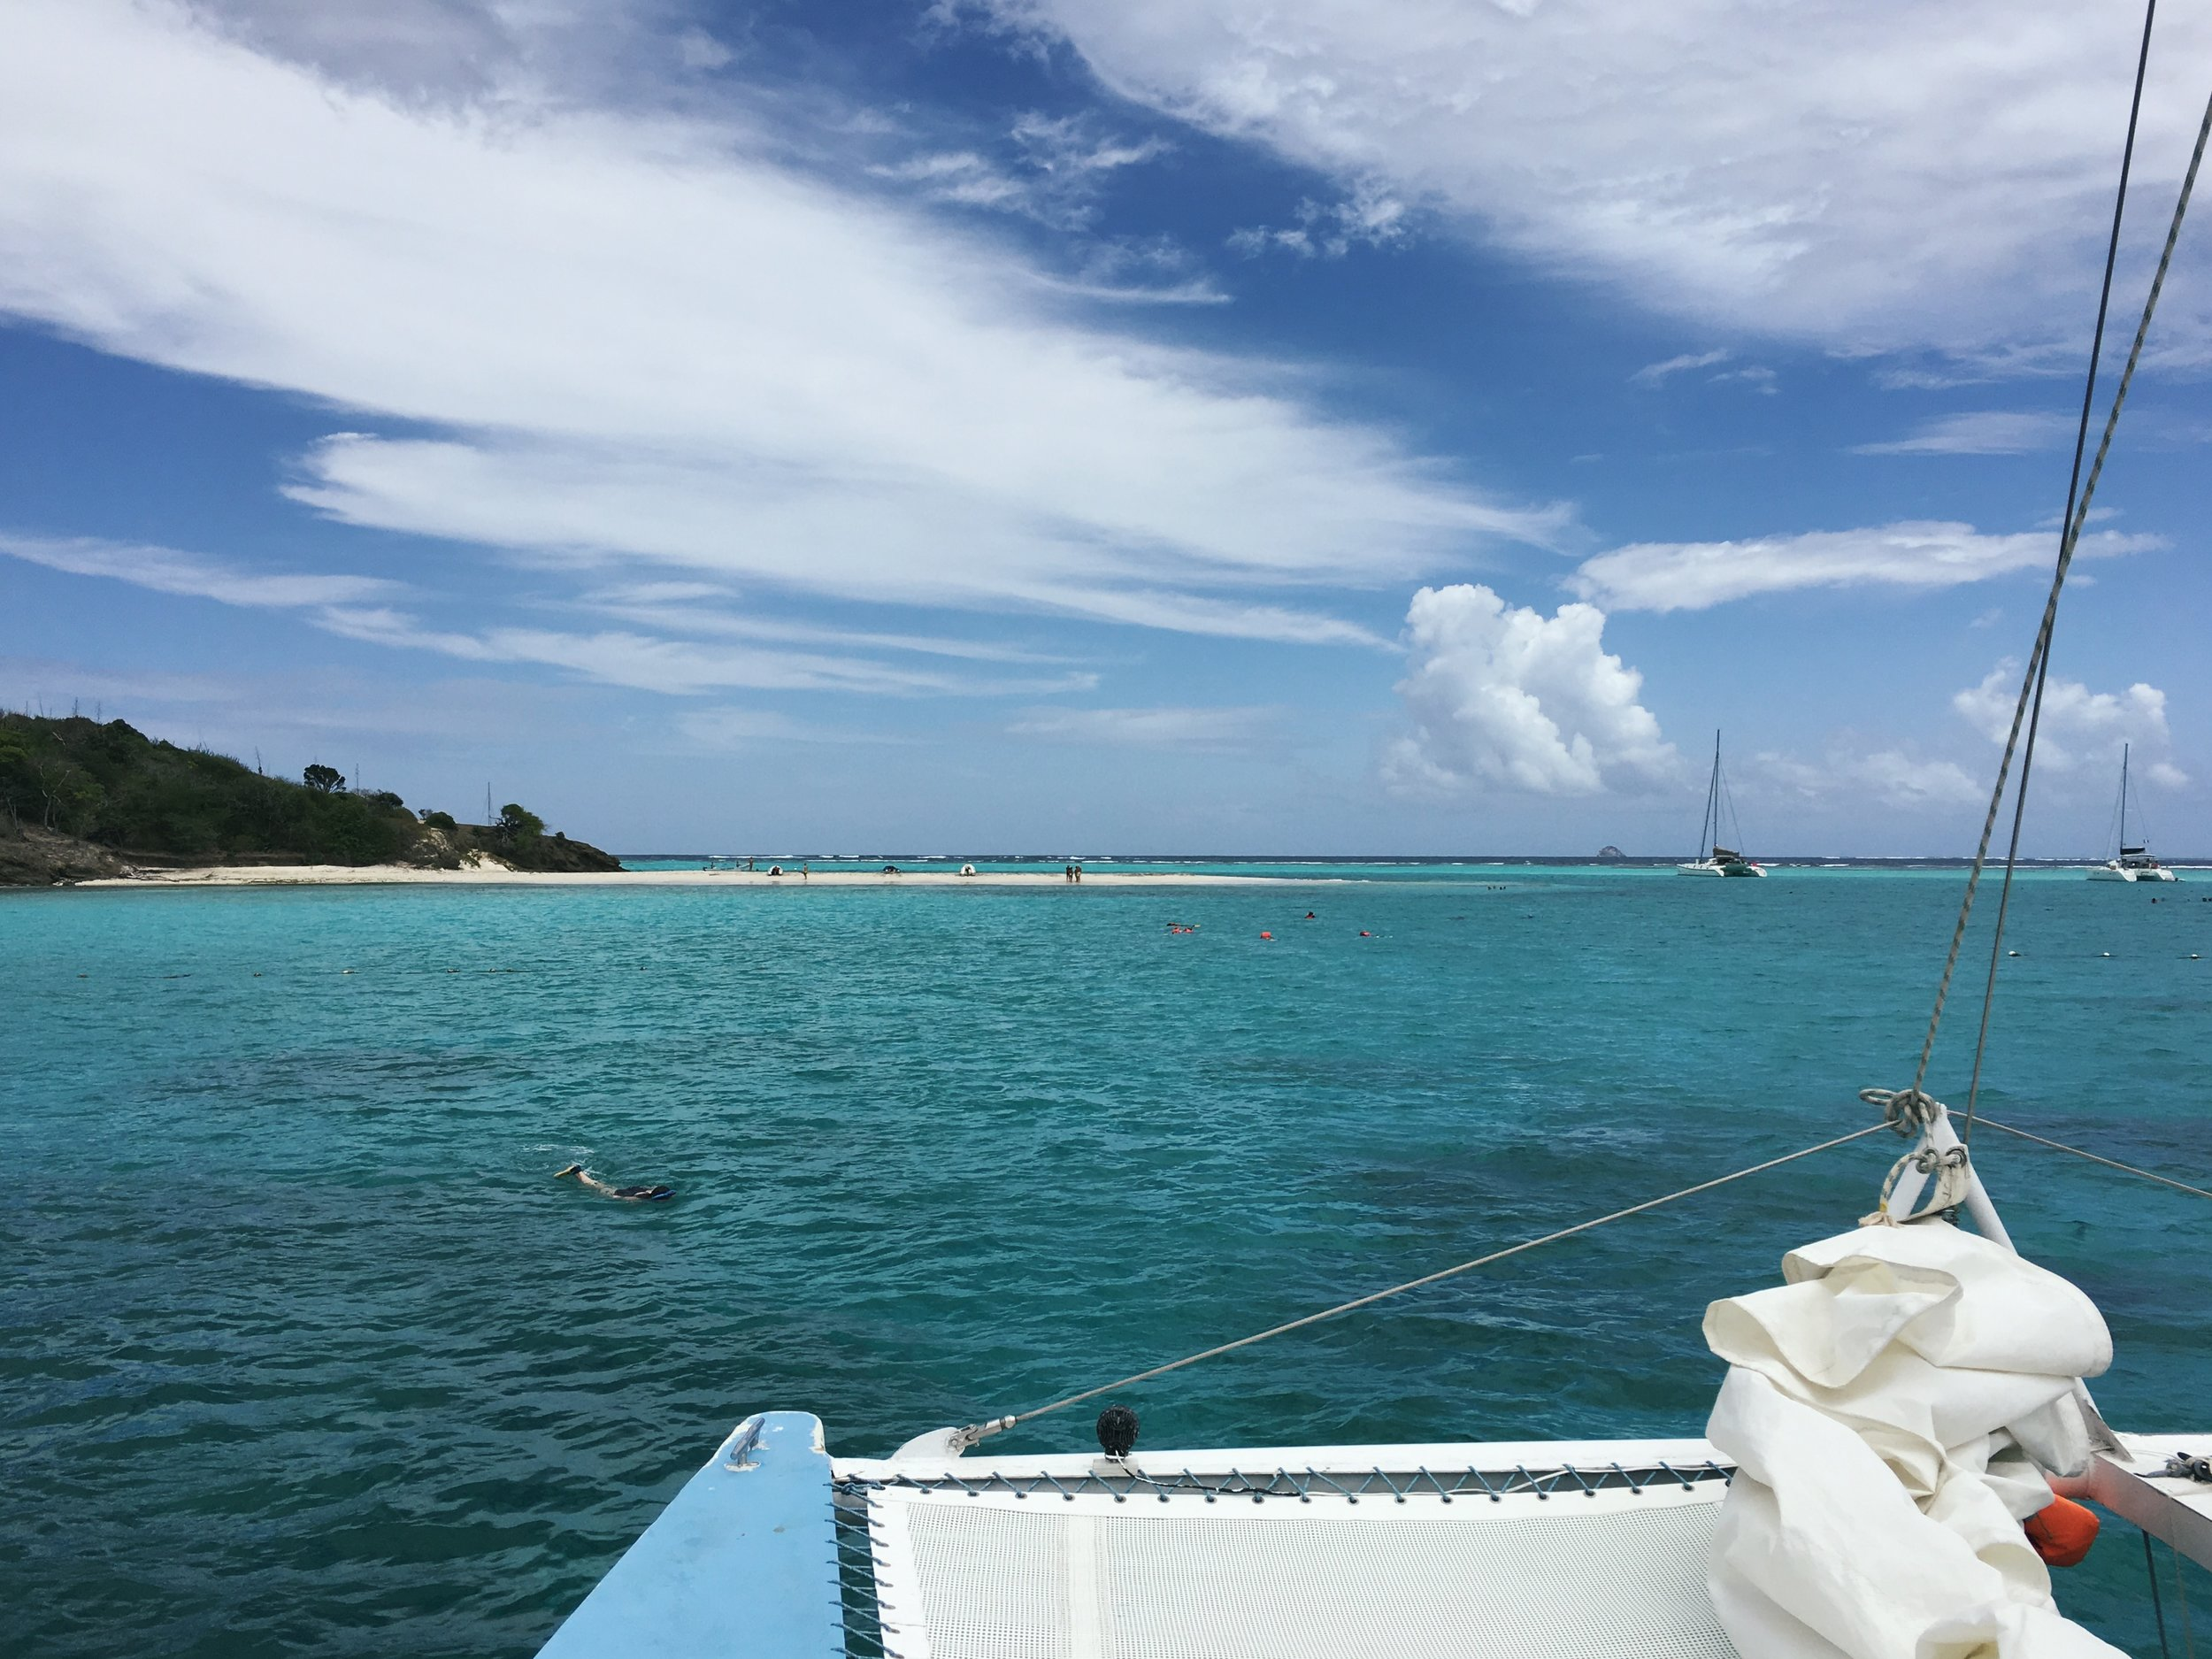 vacation sailing adventure, swim with sea turtles